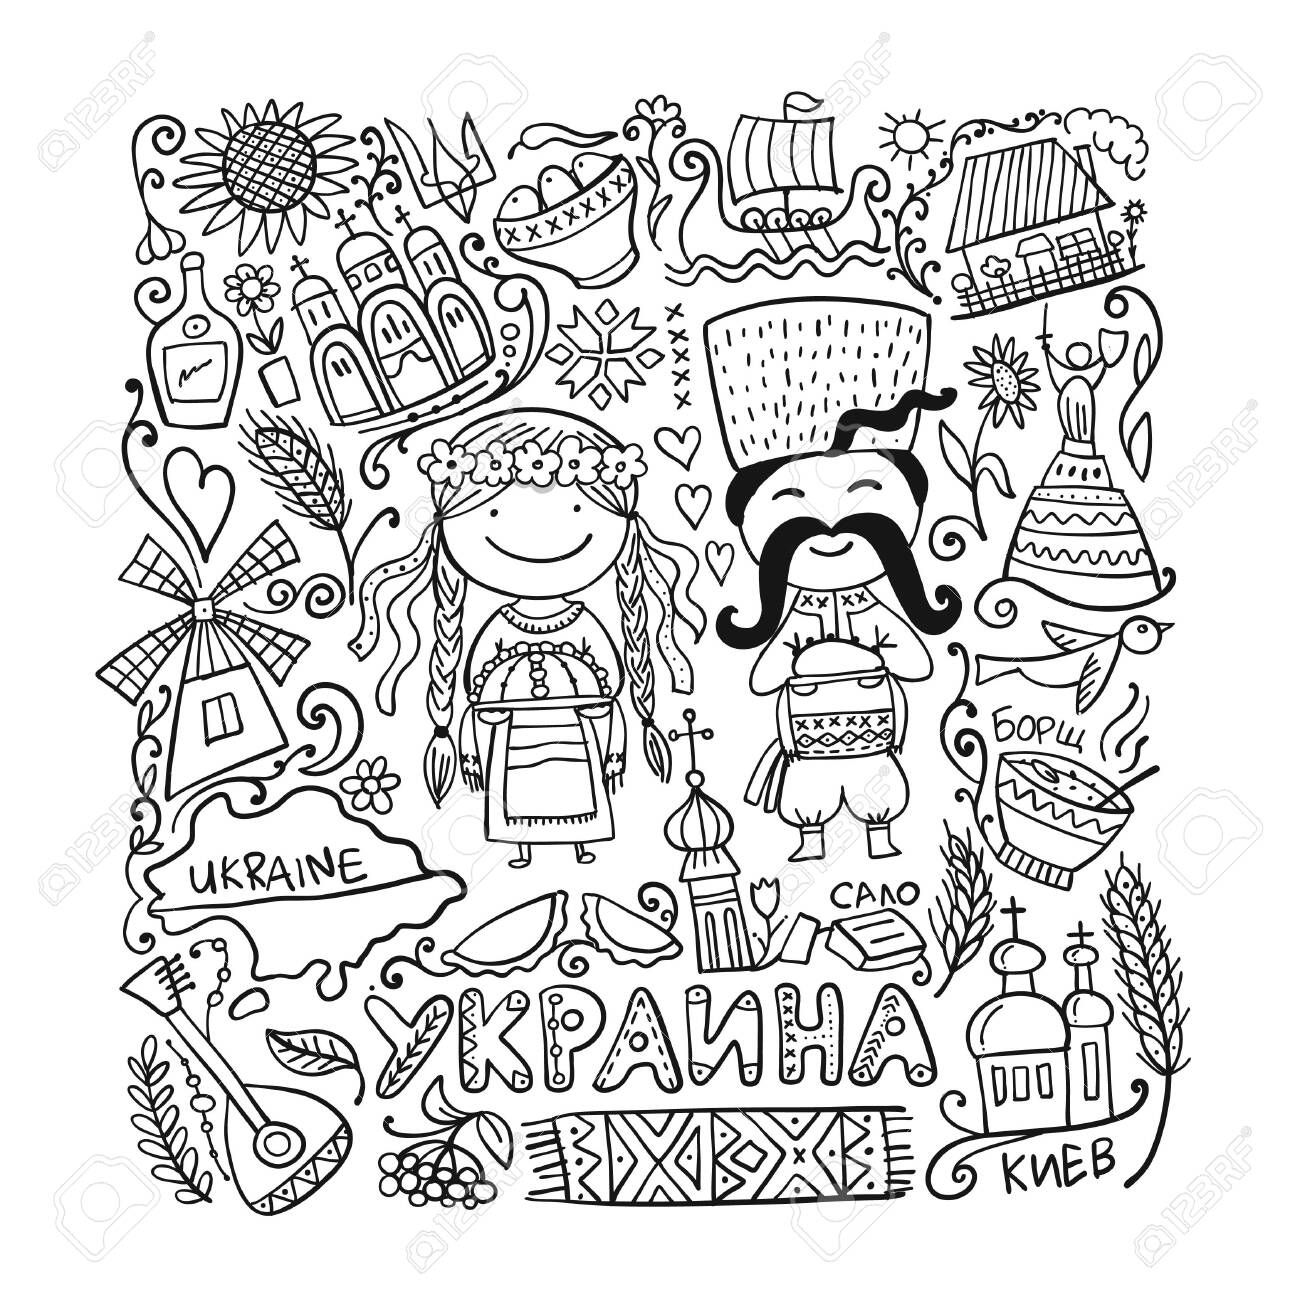 Travel To Ukraine Coloring Page For Your Design Illustration Affiliate Coloring Ukraine Travel Illustrati Illustration Design Prints Coloring Pages